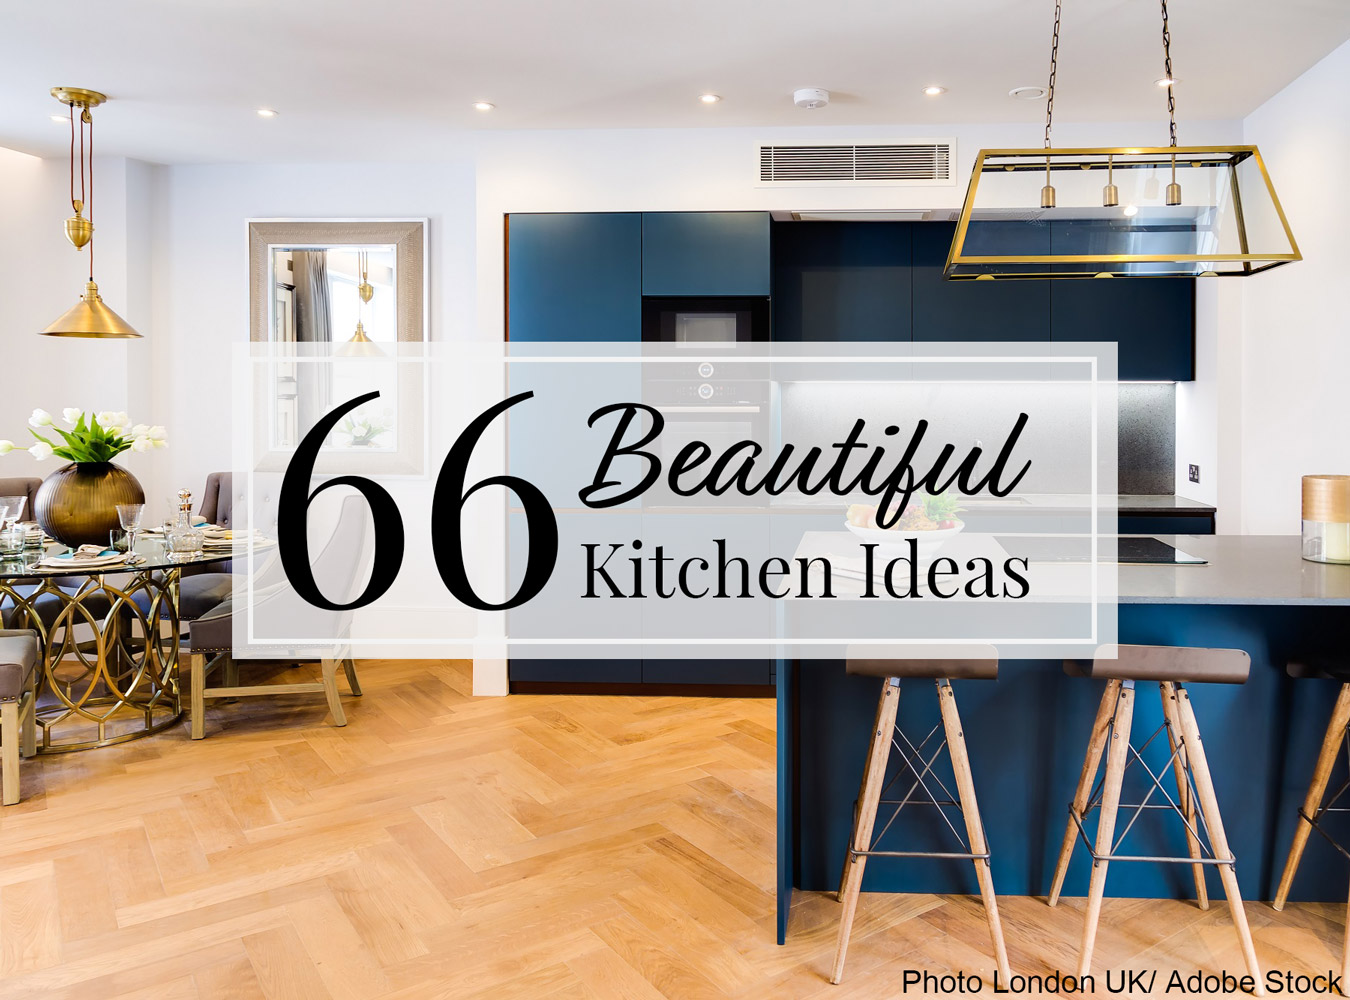 Kitchen Design Room 66 Beautiful Kitchen Design Ideas For The Heart Of Your Home